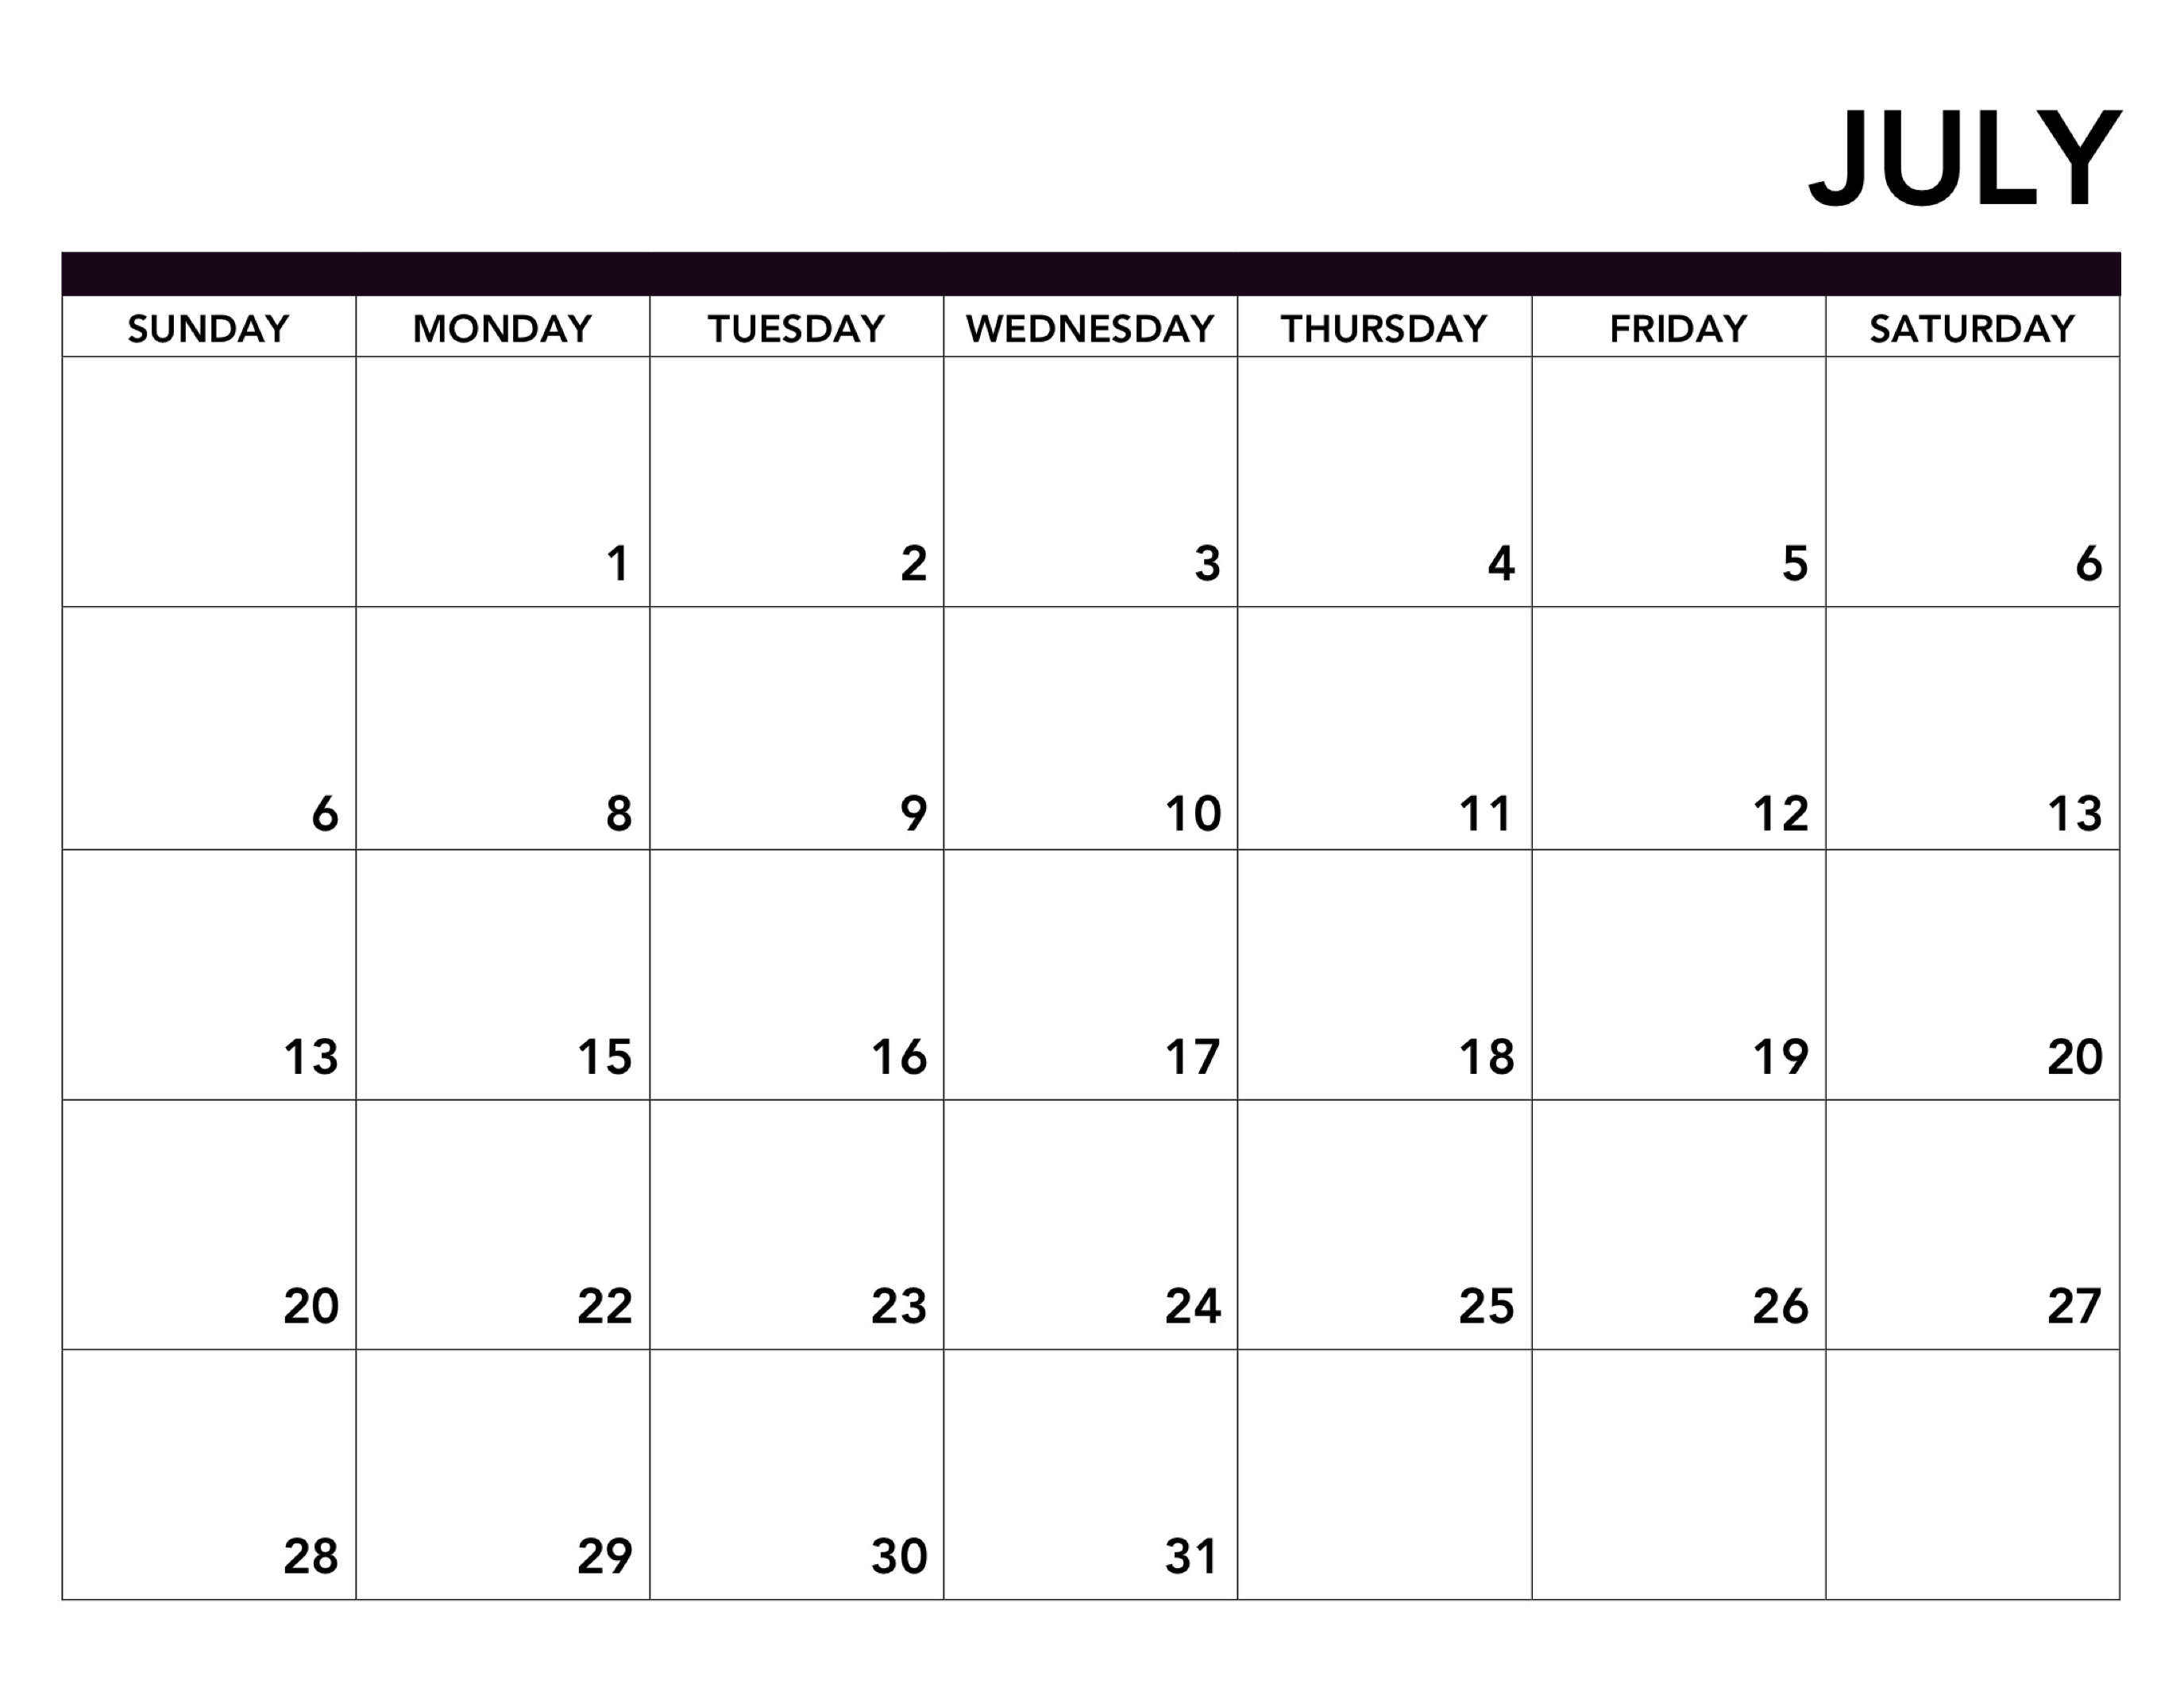 image regarding Printable Calendars Free named 2019 Printable Calendar No cost Web pages - Paper Path Structure